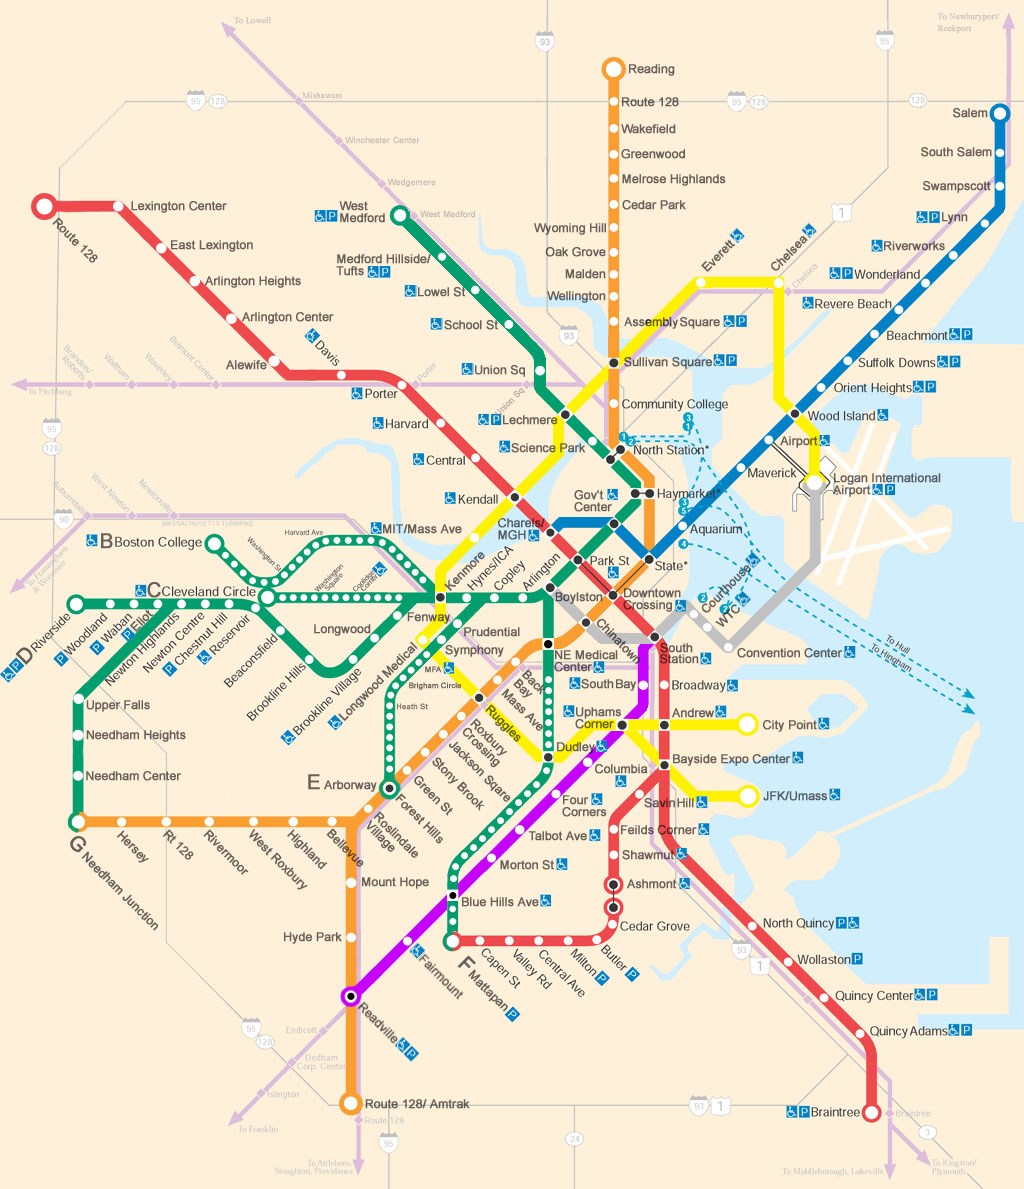 A transit map of a greatly expanded MBTA, featuring extensions of most lines and a new circular line outside the city's core.